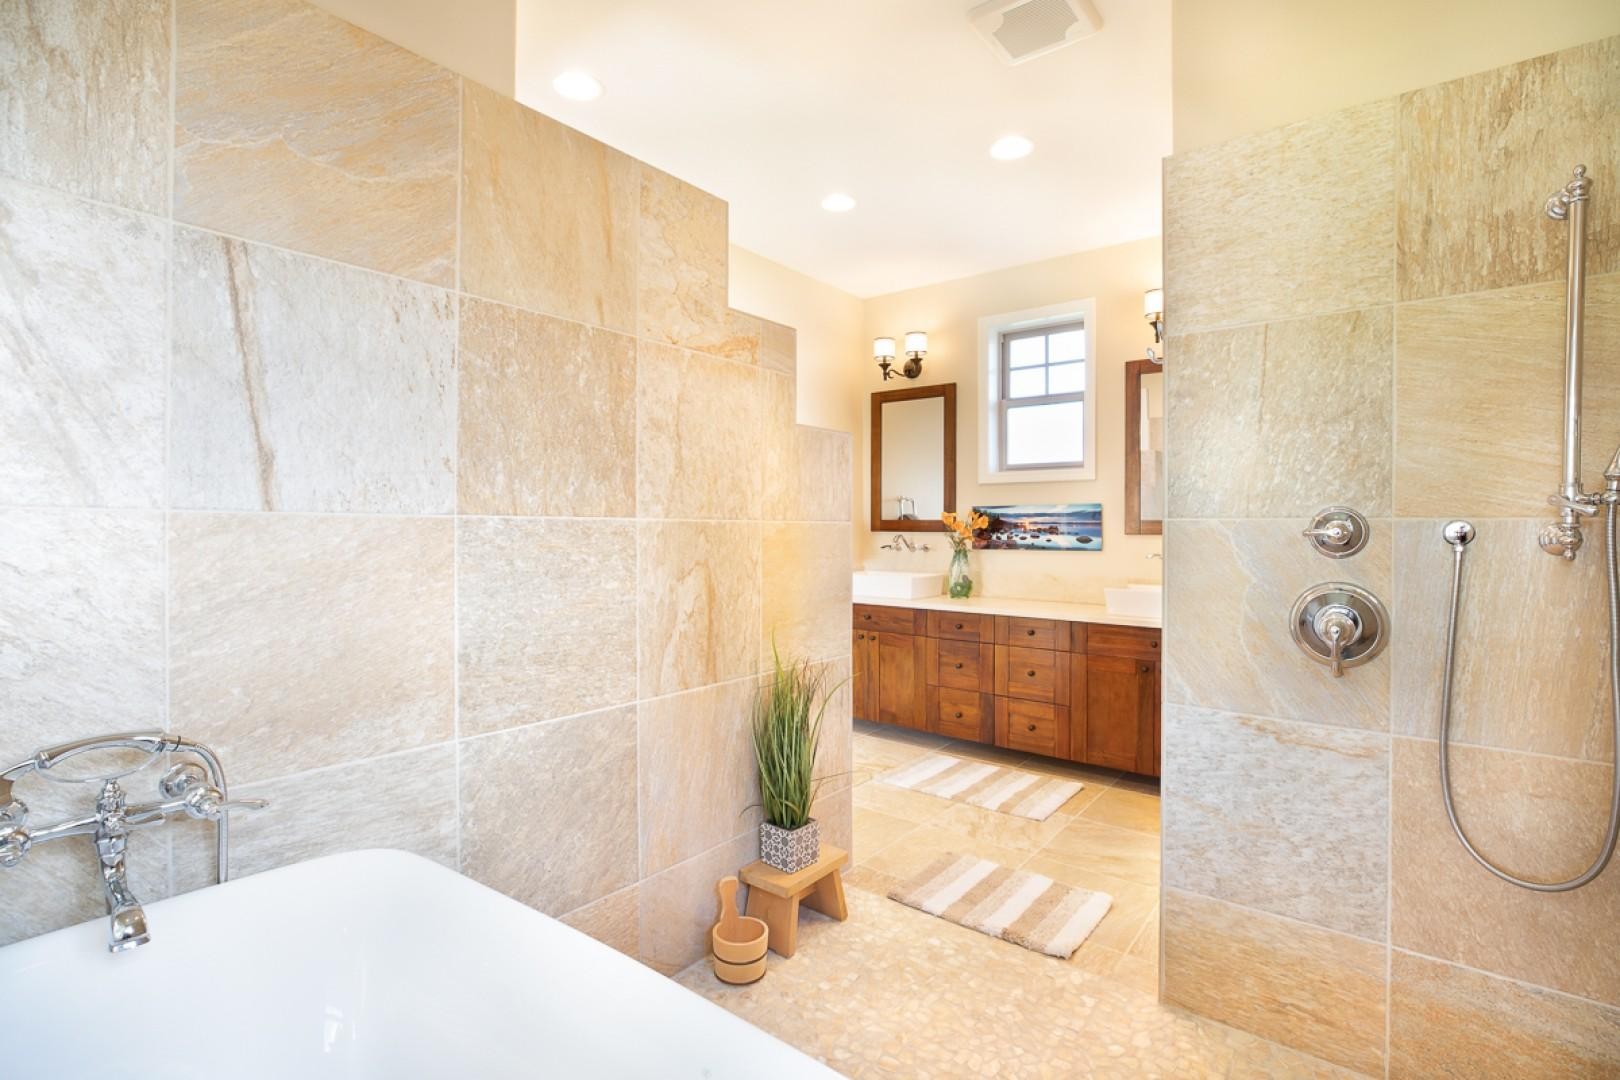 Master Ensuite with large walk in shower and elegant soaking tub